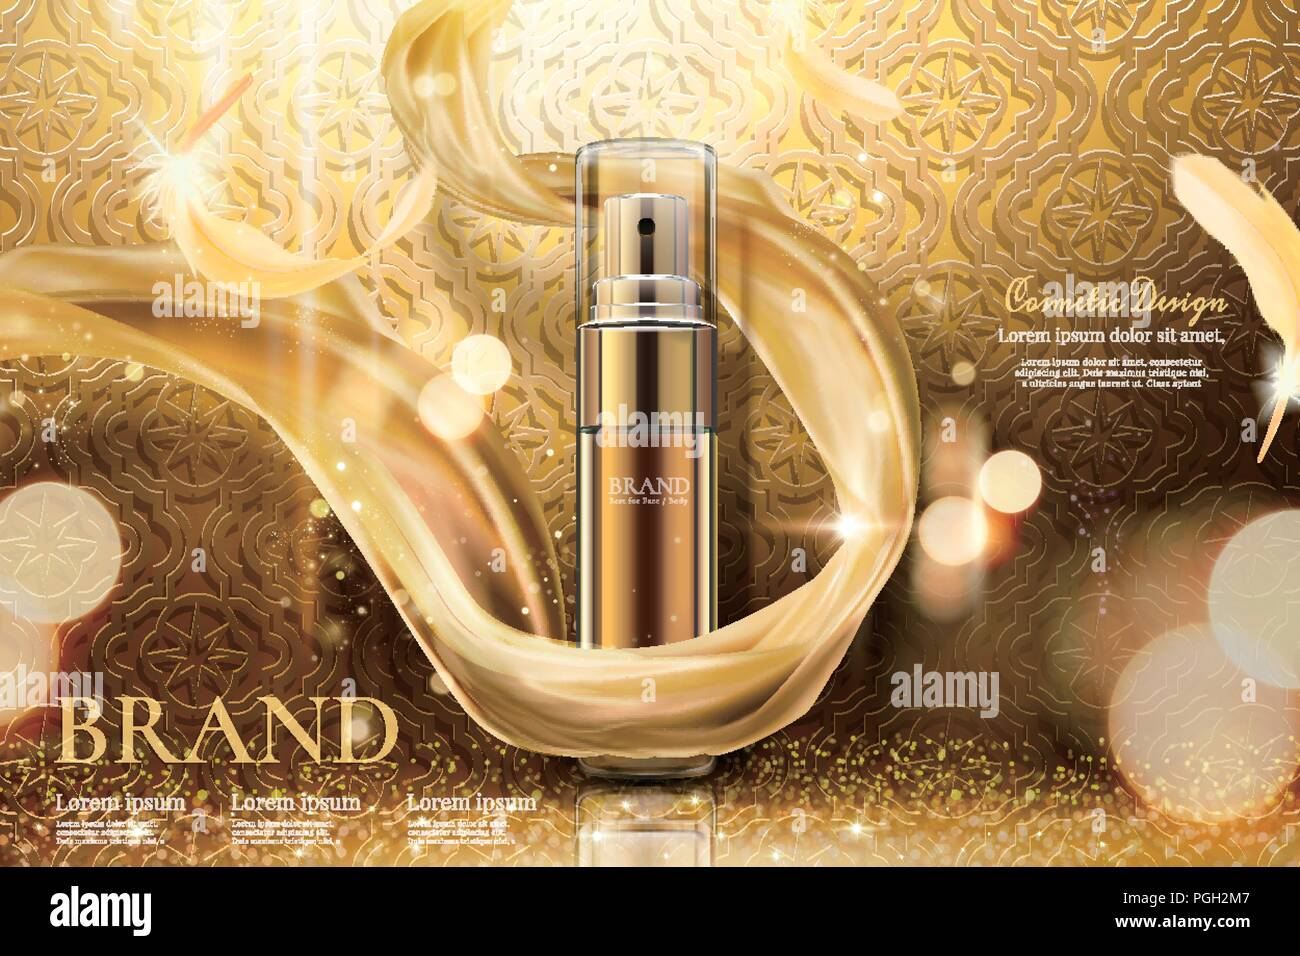 Luxury golden skincare spray with weaving chiffon in 3d illustration, curved background - Stock Vector